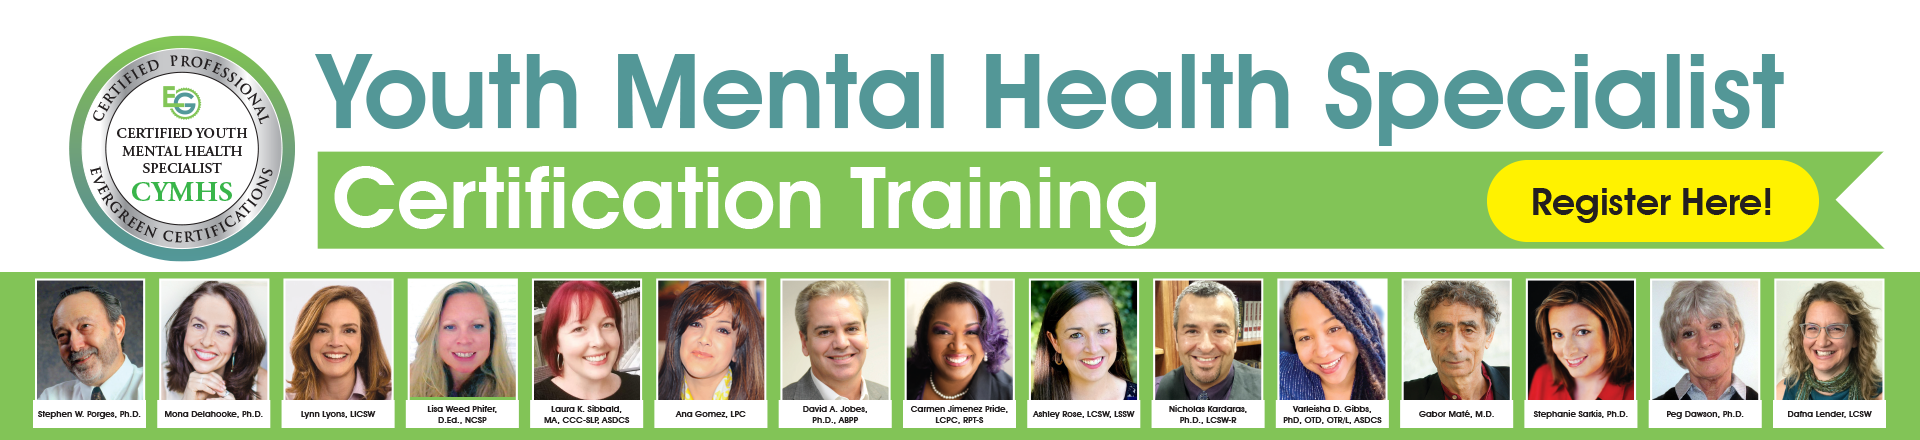 Youth Mental Health Specialist Certification Training